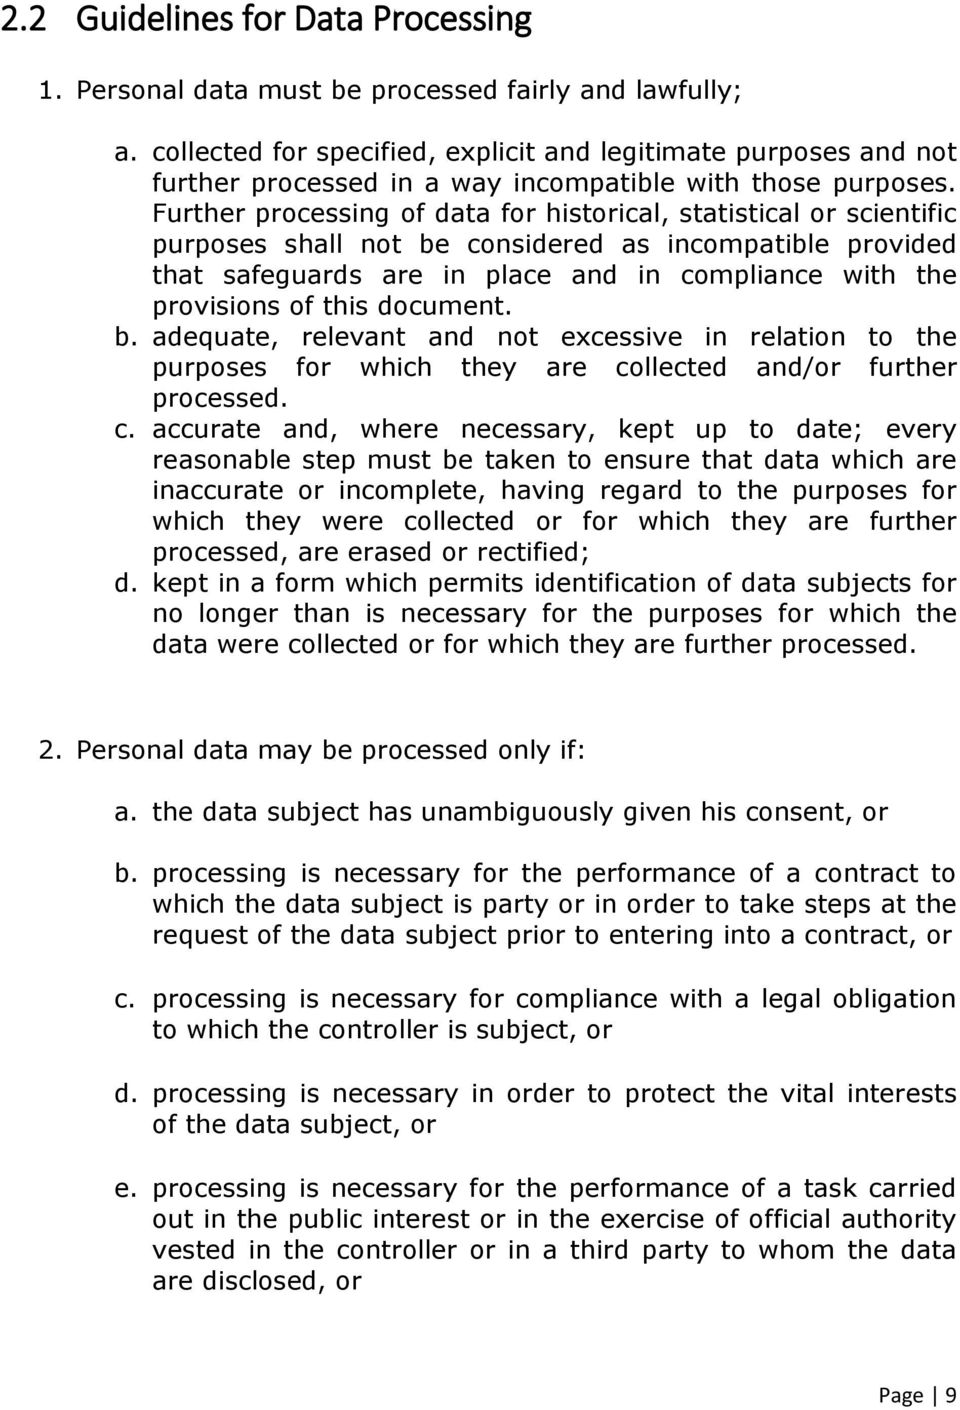 Further processing of data for historical, statistical or scientific purposes shall not be considered as incompatible provided that safeguards are in place and in compliance with the provisions of